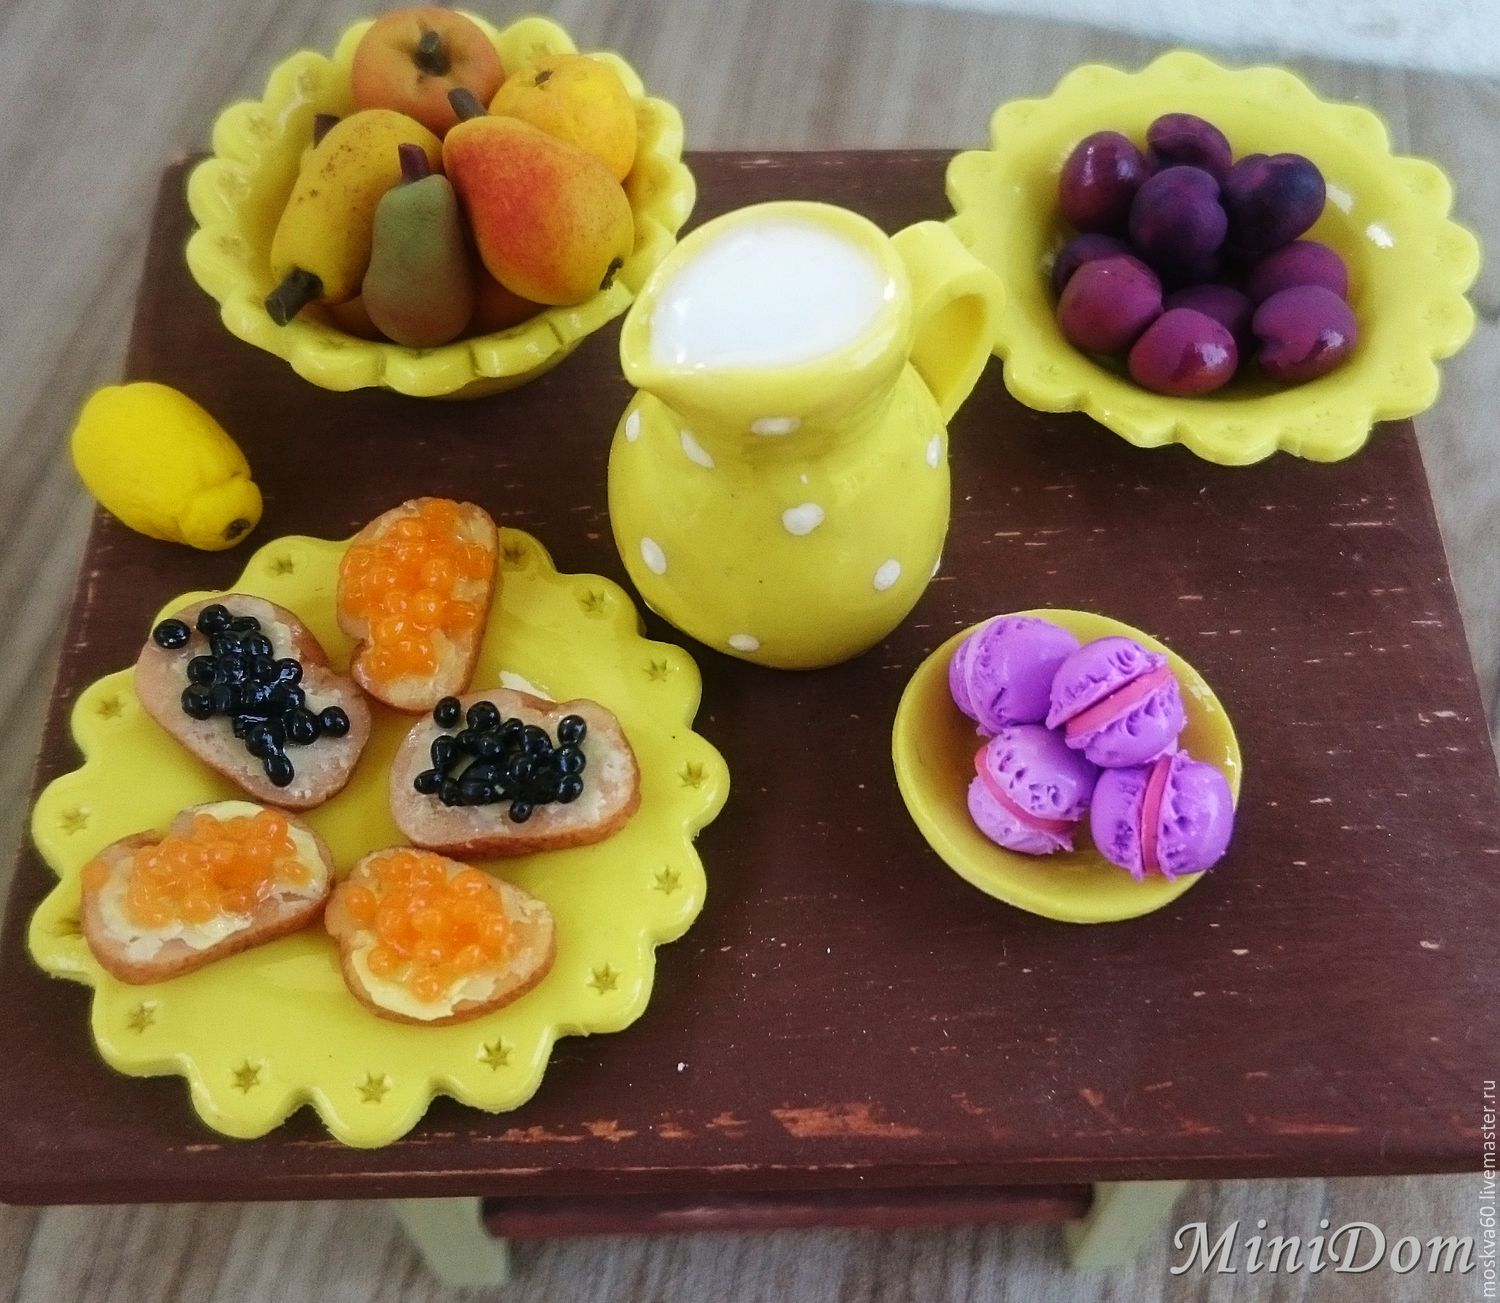 Dollhouse miniature tableware for dolls food for dolls doll accessories handmade Dollhouse Doll house dolls House Miniature for doll Accessories for dolls